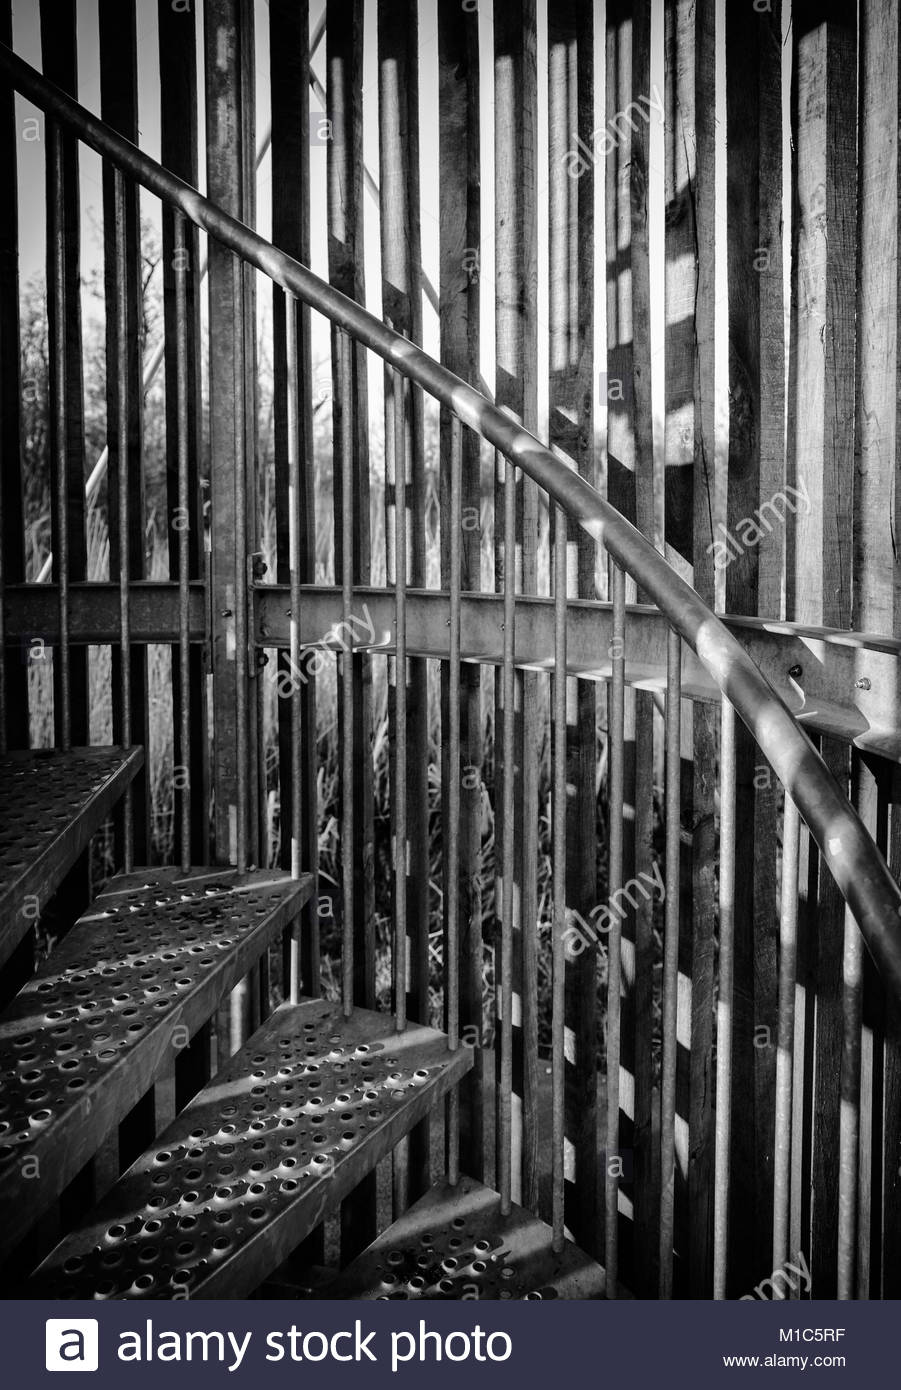 Stairs going up black and white - Stock Image